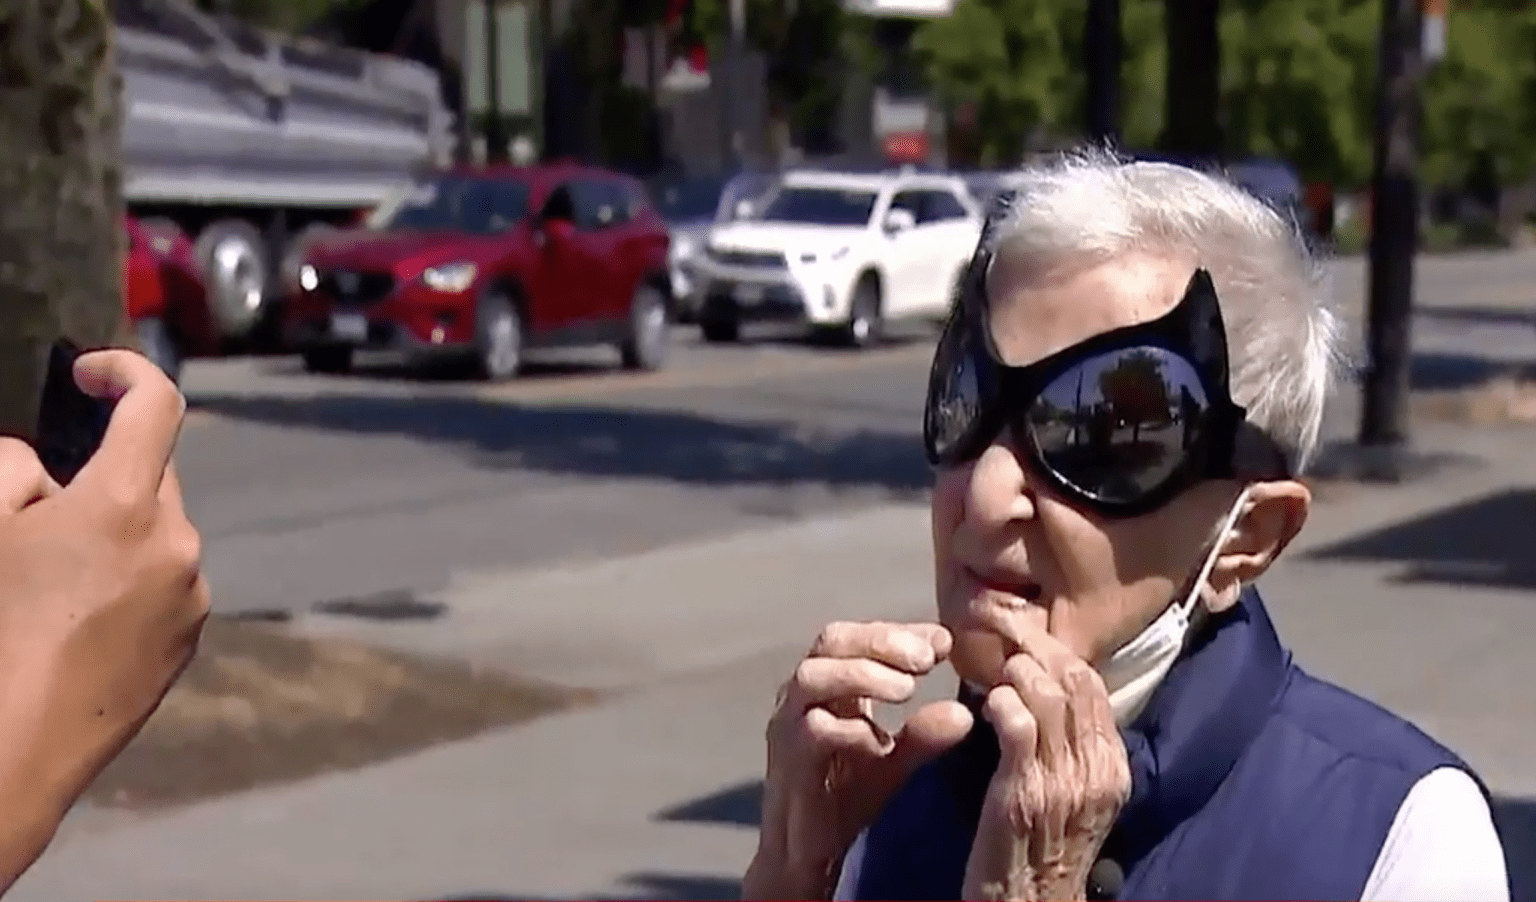 Seattle: Elderly woman, 89, violently assaulted in 'random attack' that left her with stitches